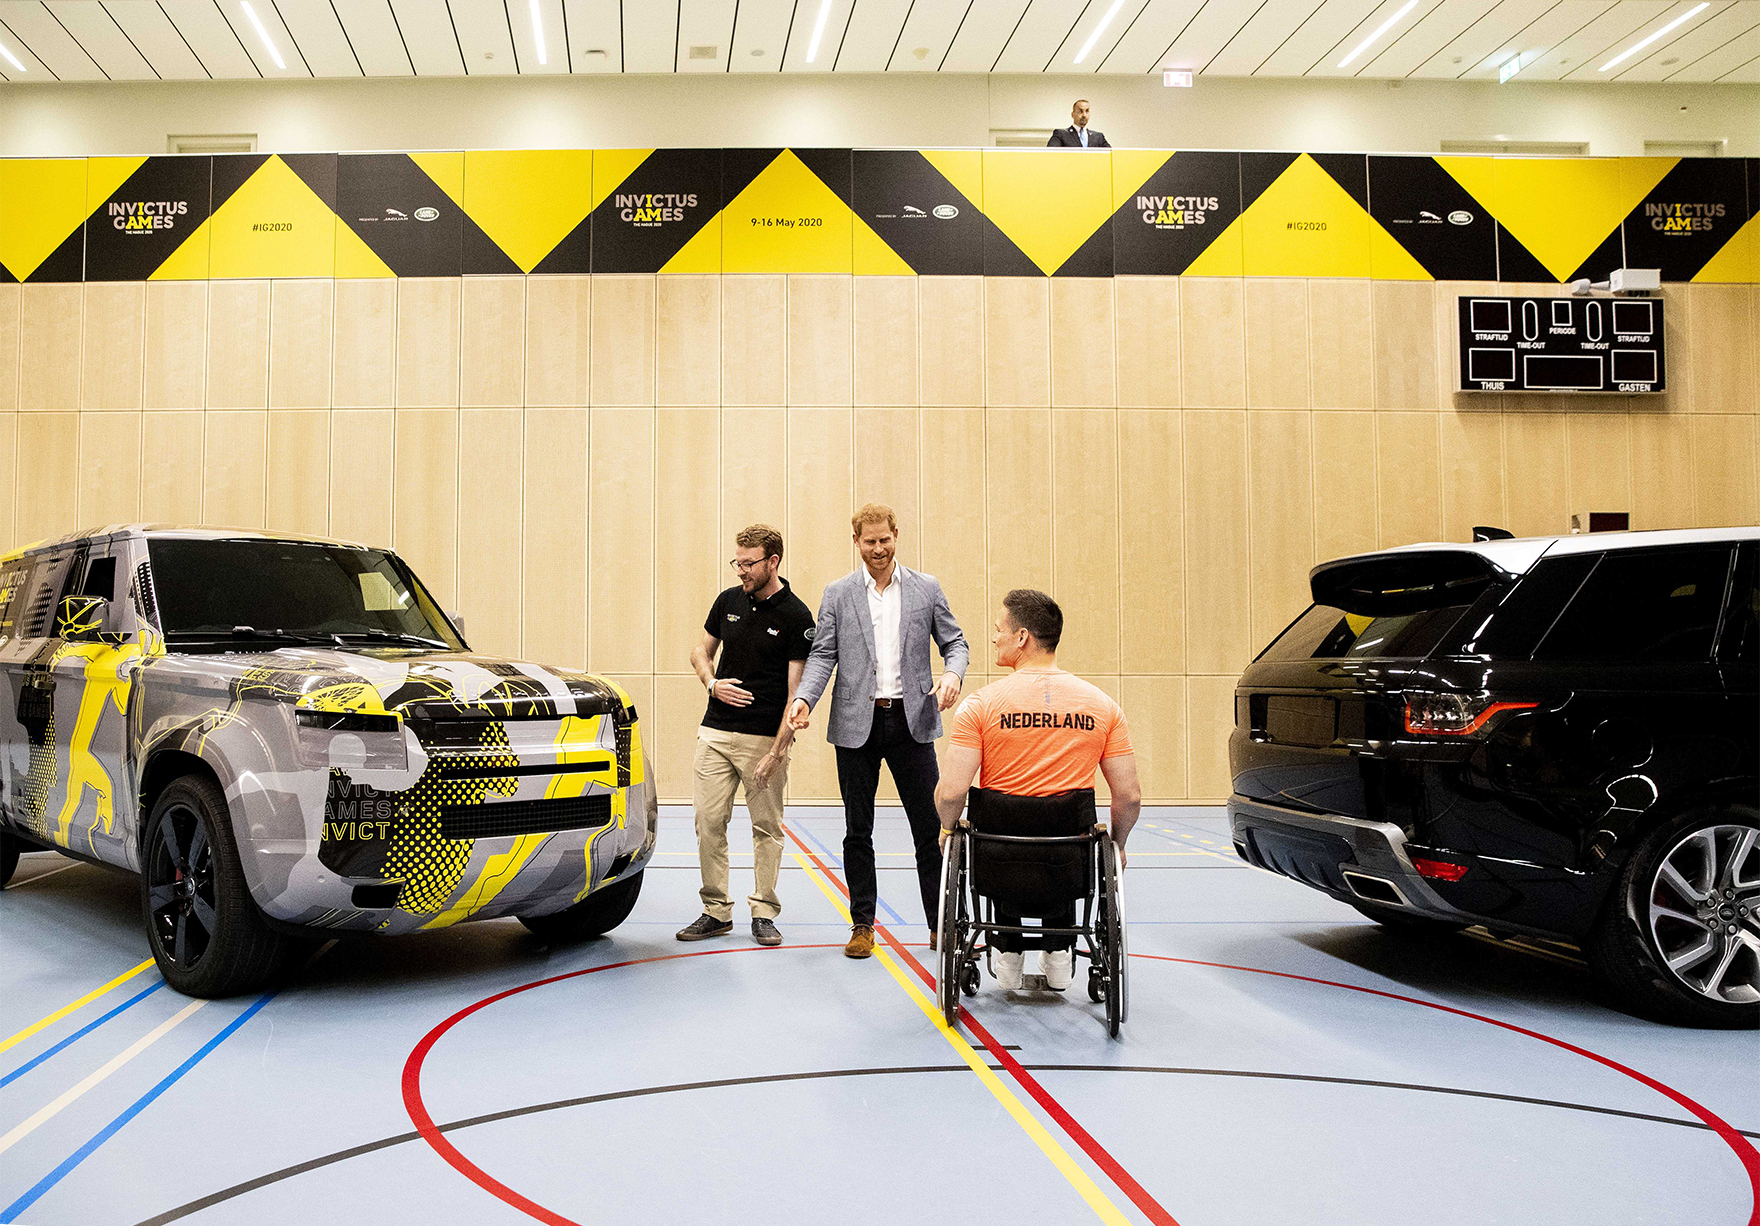 Prince Harry Visits Sportcampus Zuiderpark The Hague Den Haag Invictus Games Indoor Lh